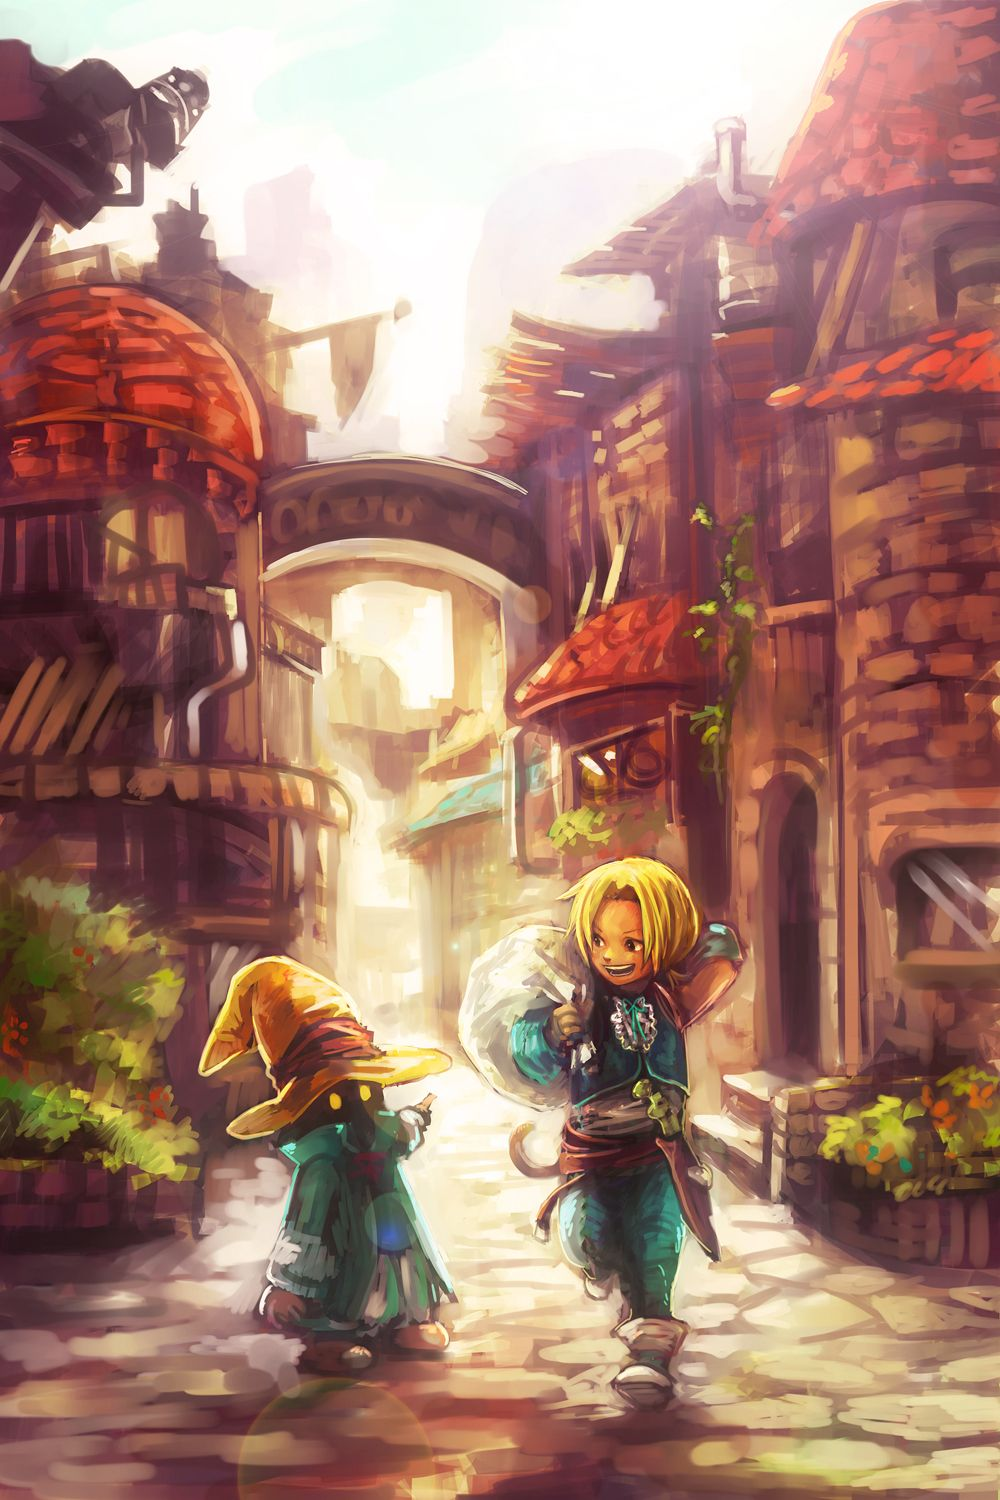 Zidane And Vivi In The Best Fan Art Ive Ever Seen For